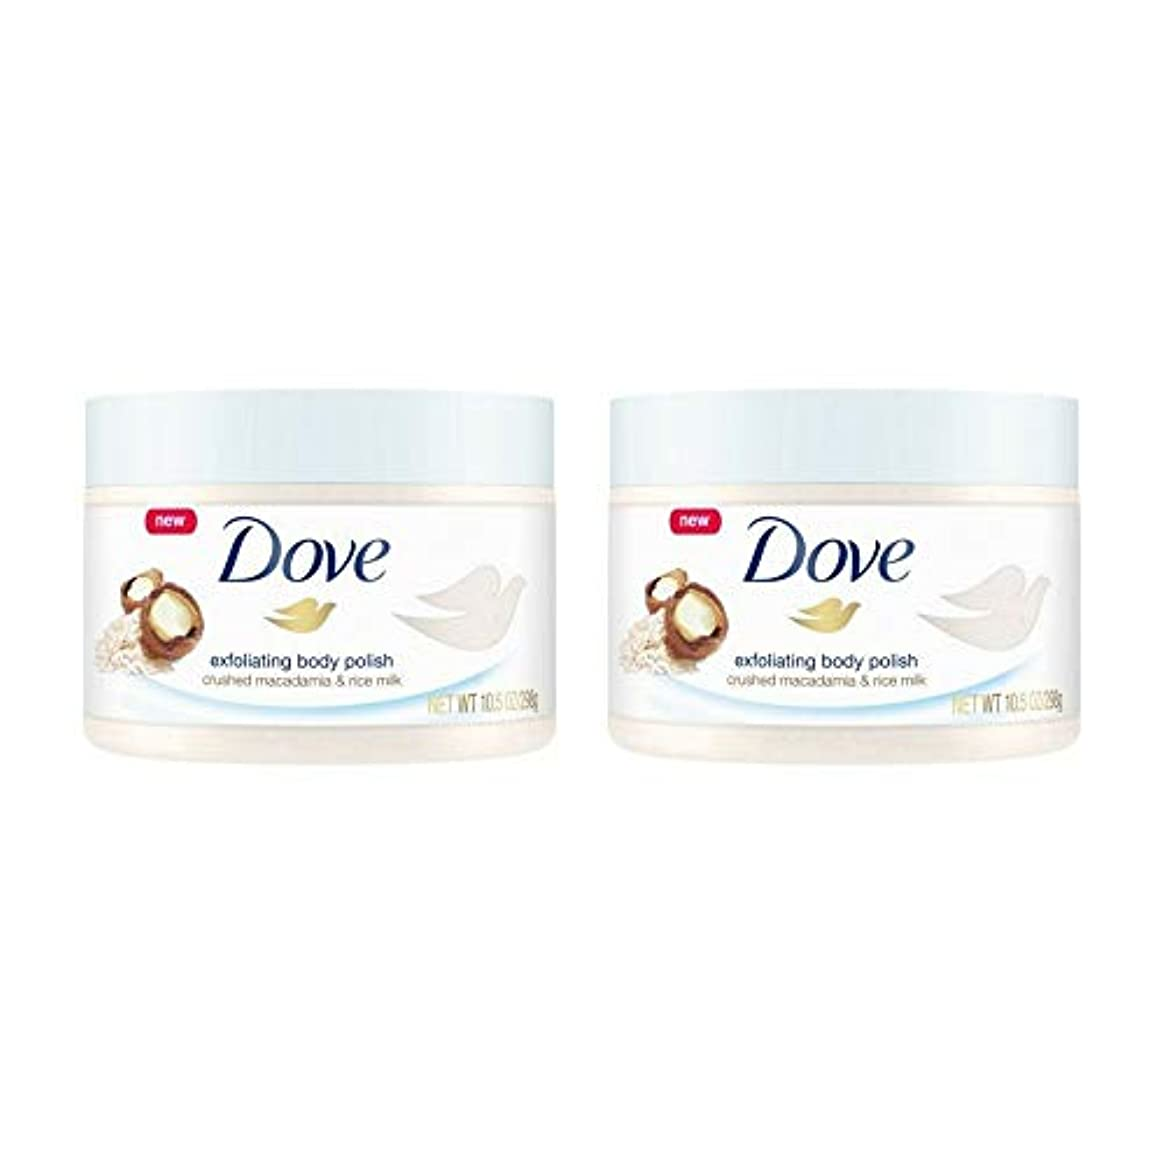 質素な何もない印をつけるDove Exfoliating Body Polish Body Scrub Macadamia & Rice Milk 10.5 oz (2 pack) 141[並行輸入]